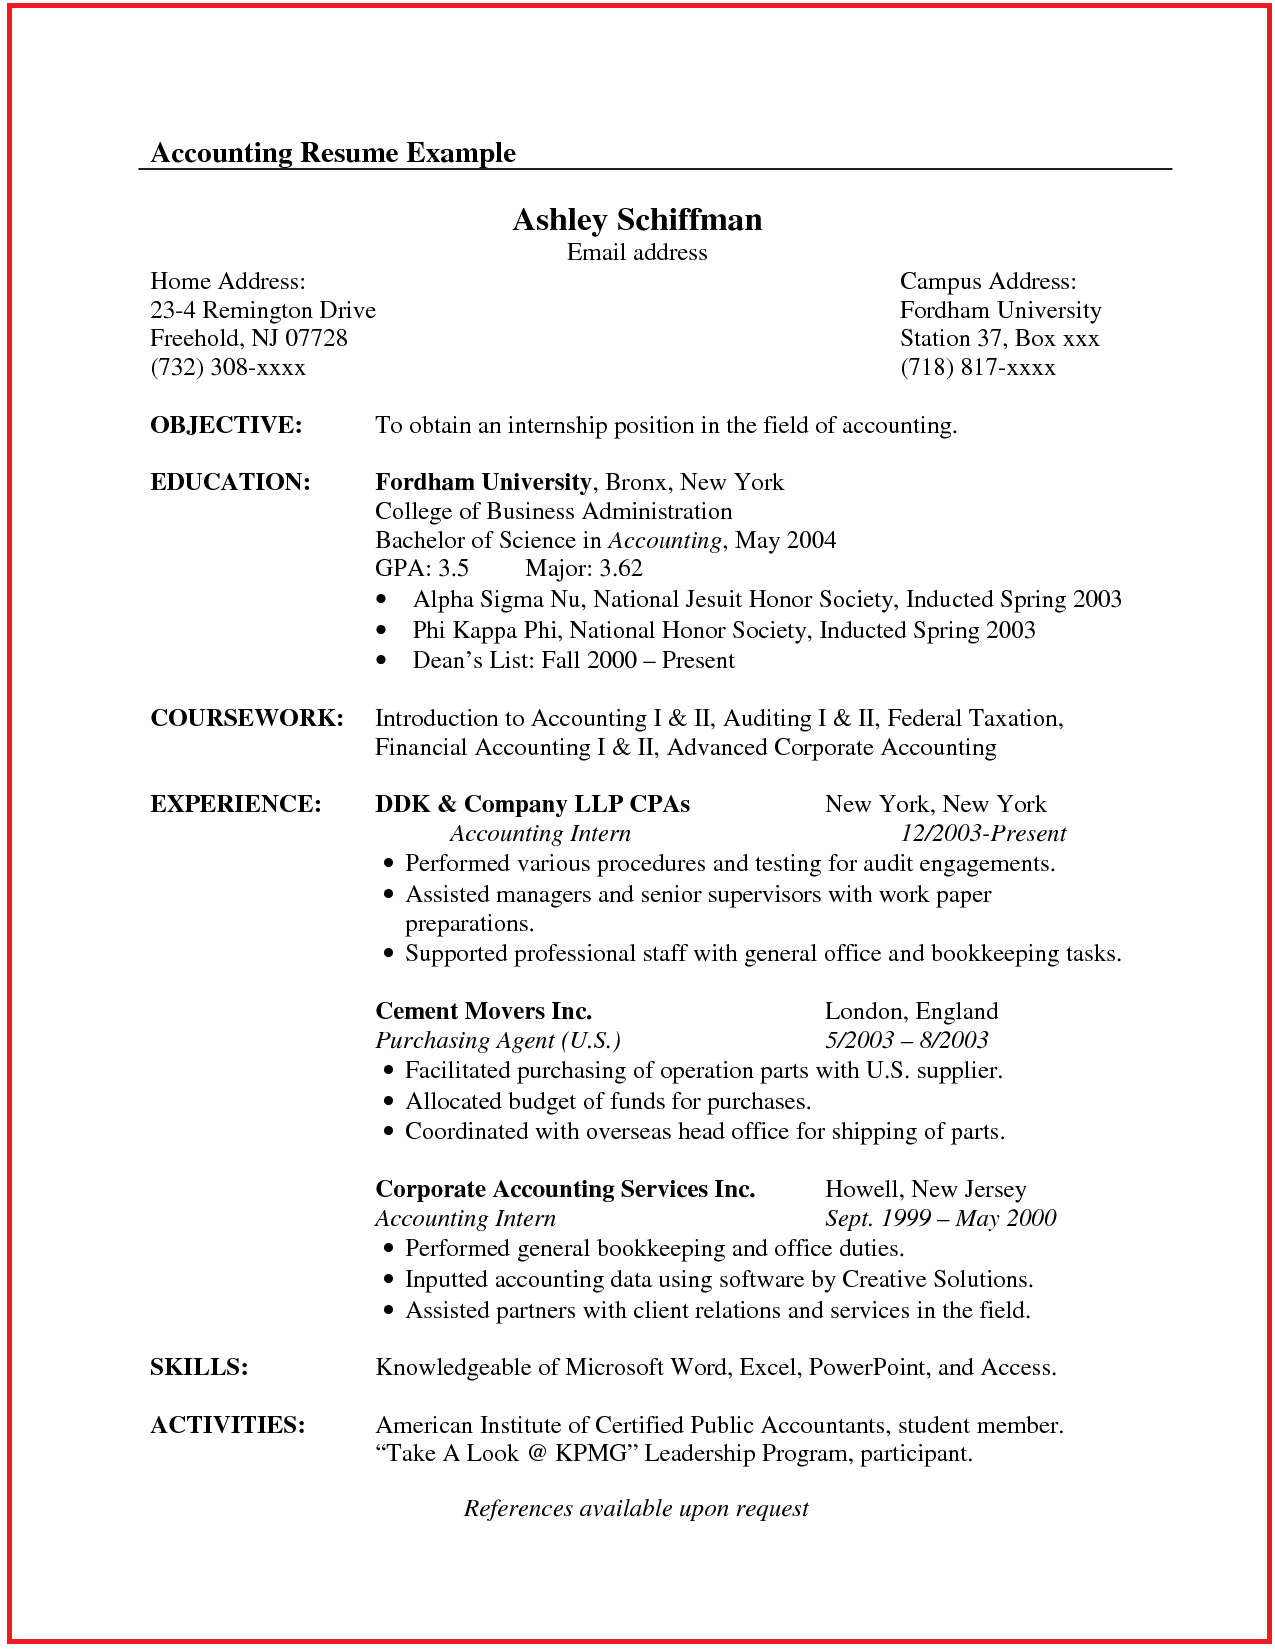 Resume Samples Canada Accountant Resume Sample Canada Http Jobresume